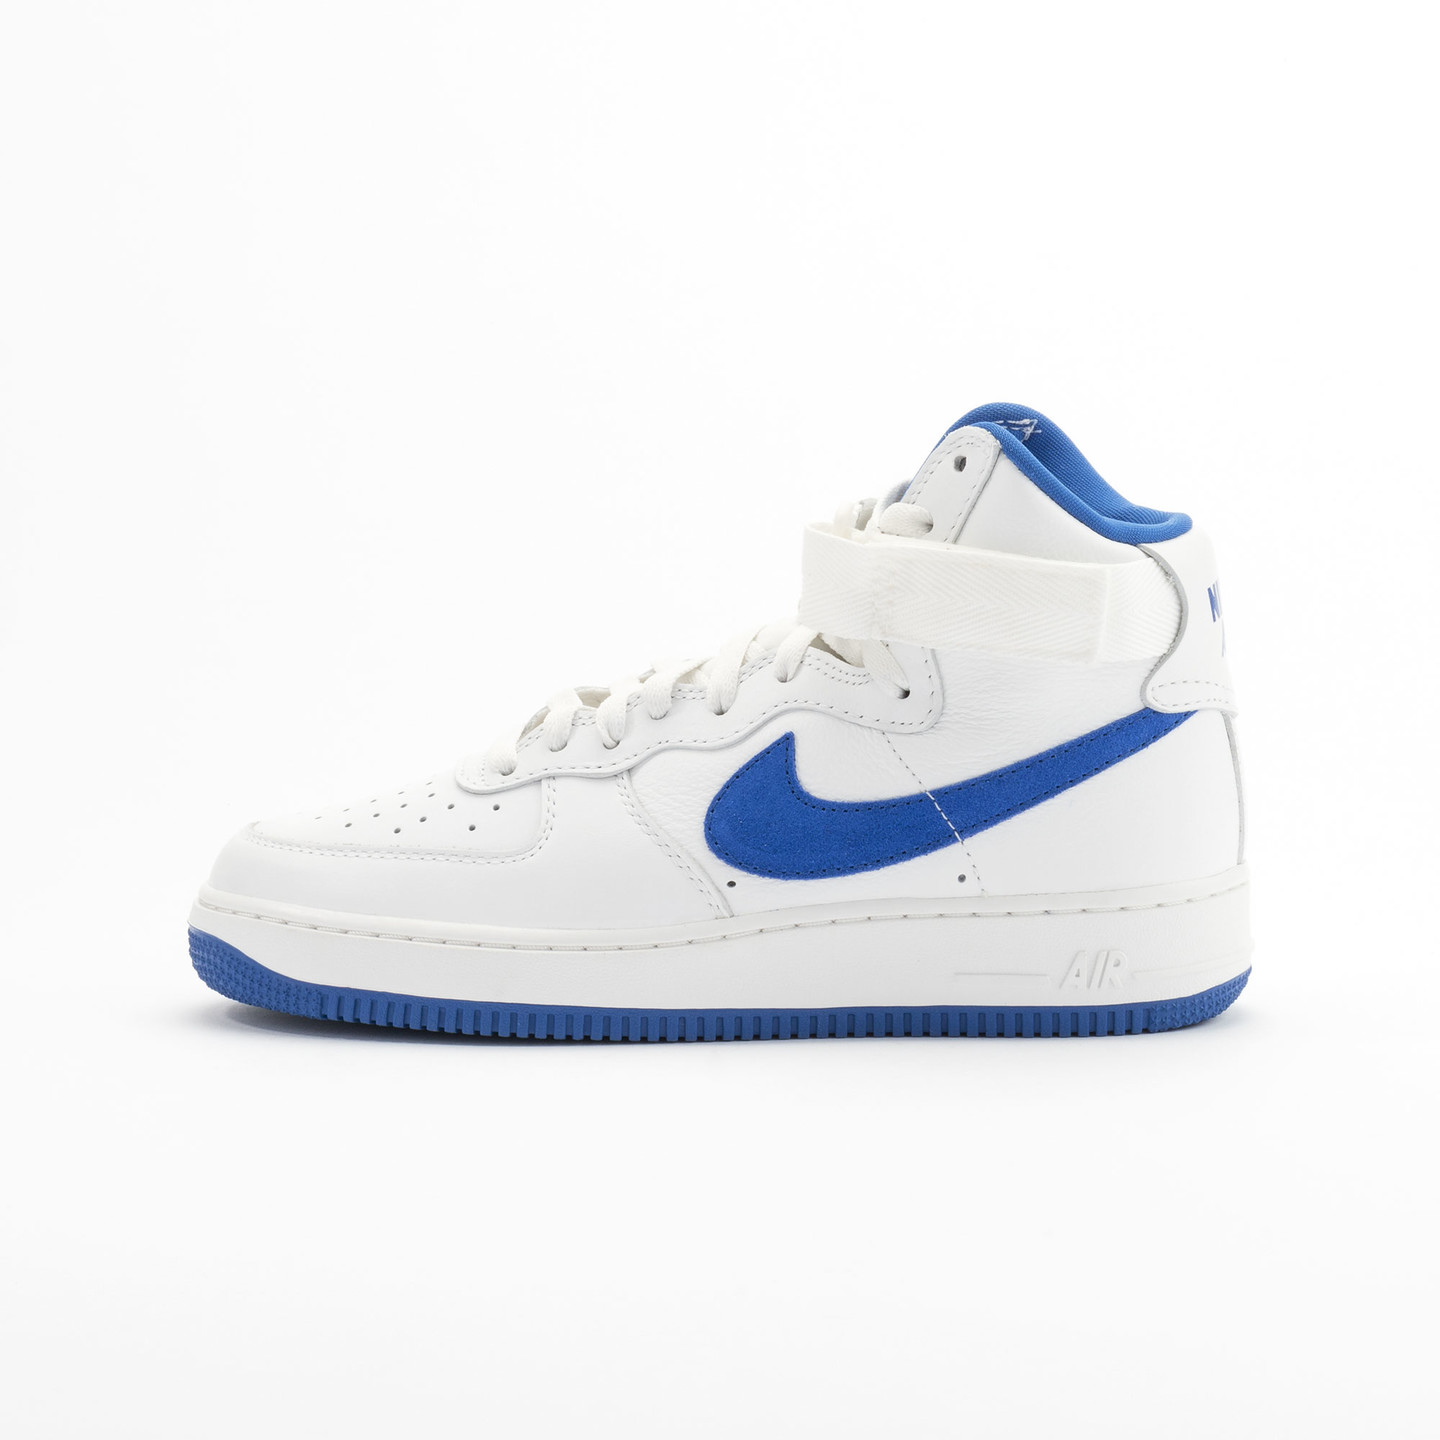 Nike Air Force 1 Hi Retro OG QS Summit White - Game Royal 743546-103-44.5